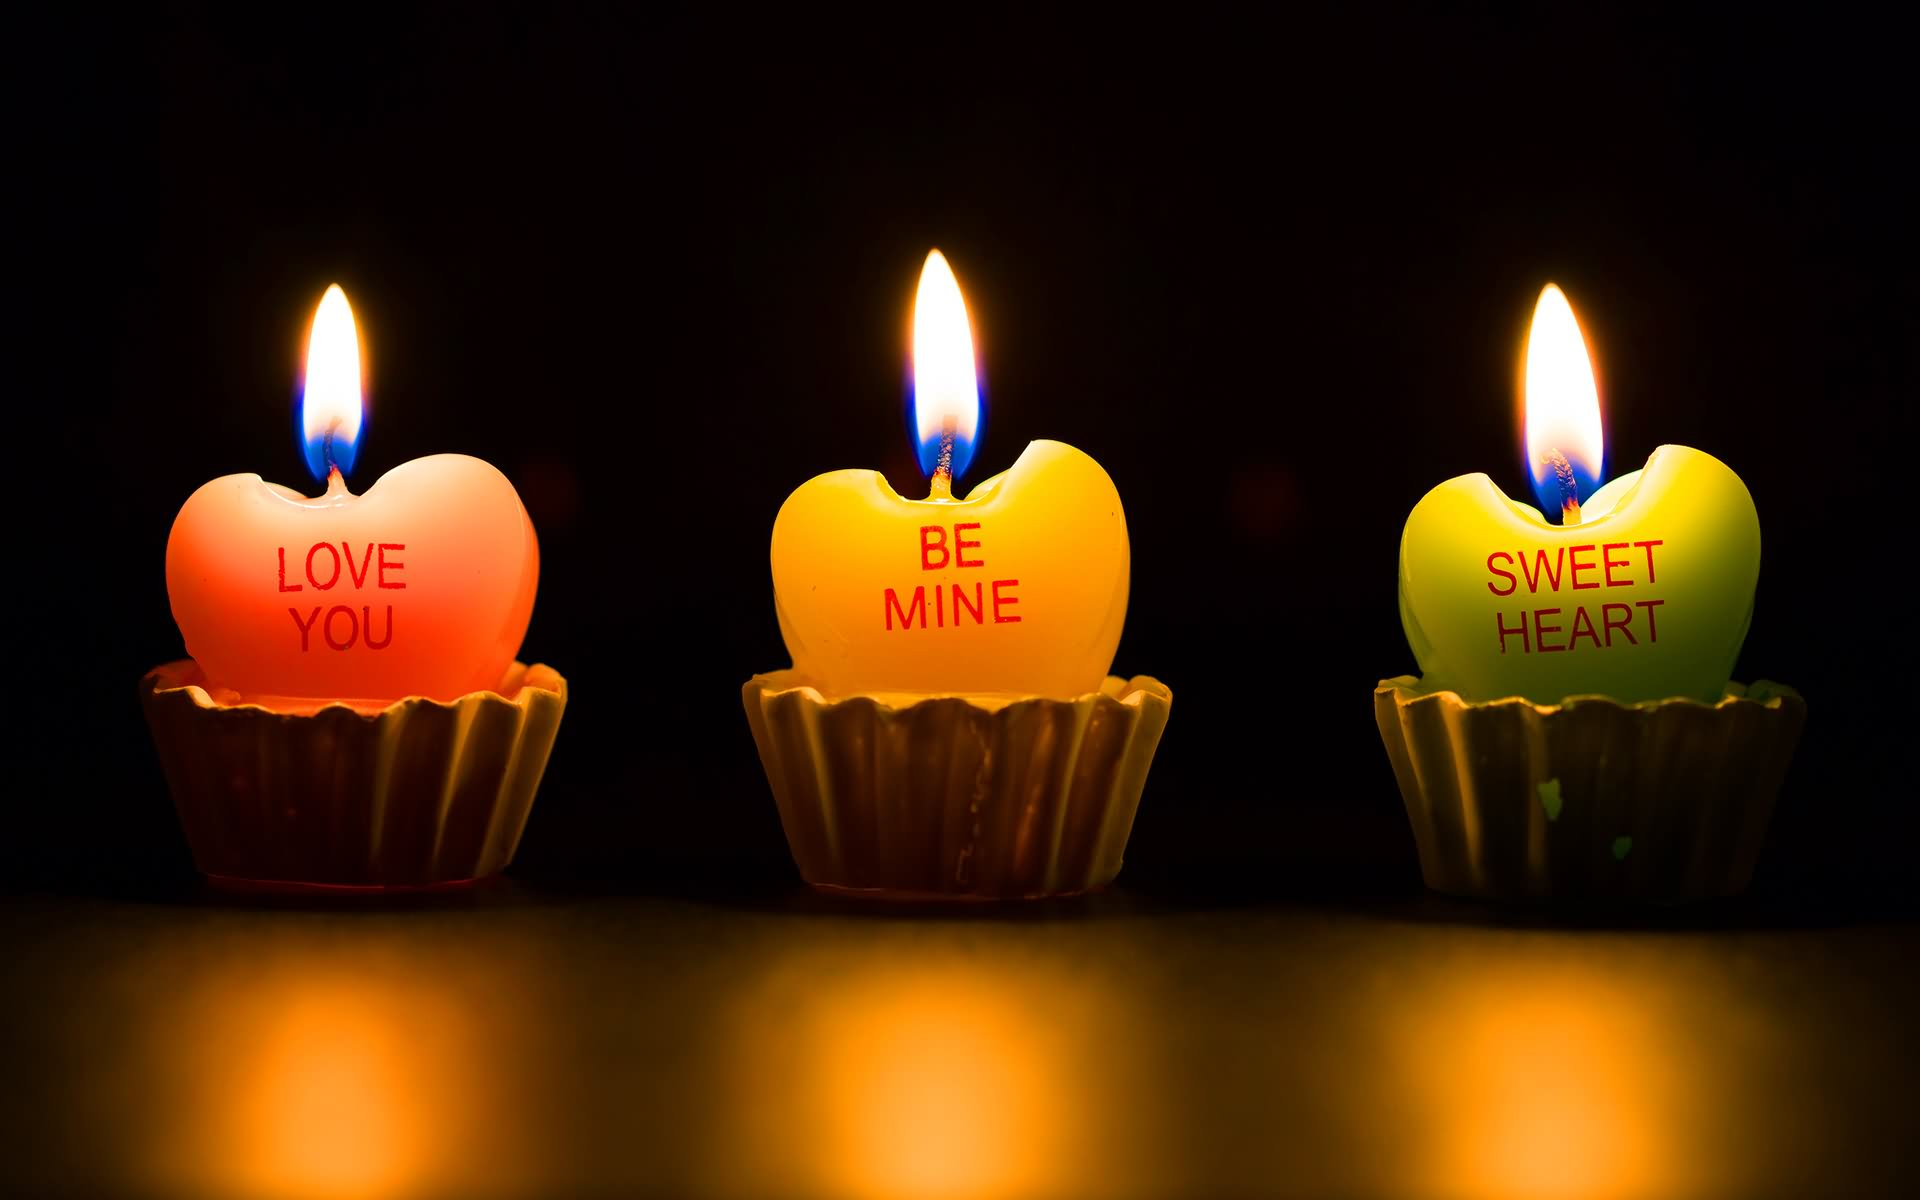 Love You Be Mine Sweet Heart Candles Image